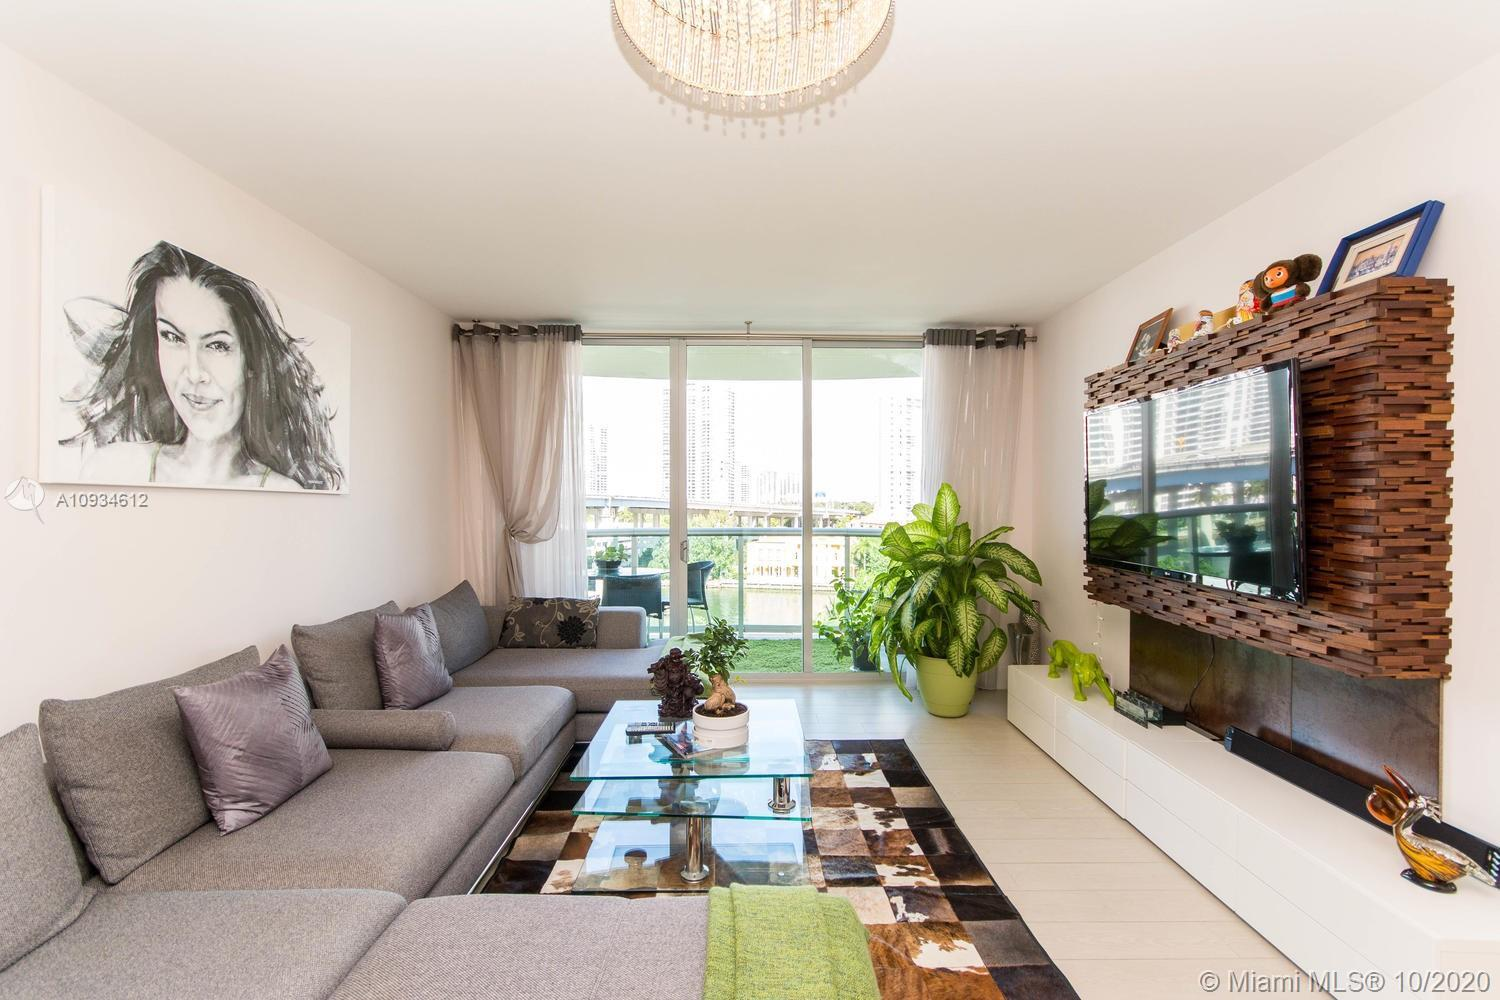 WATER VIEW HERE!!! 1600 S/F ENTIRE UNIT IS DESIGNER REMODELED & FURNISHED RESIDENCE. NEW PLUMBING ET